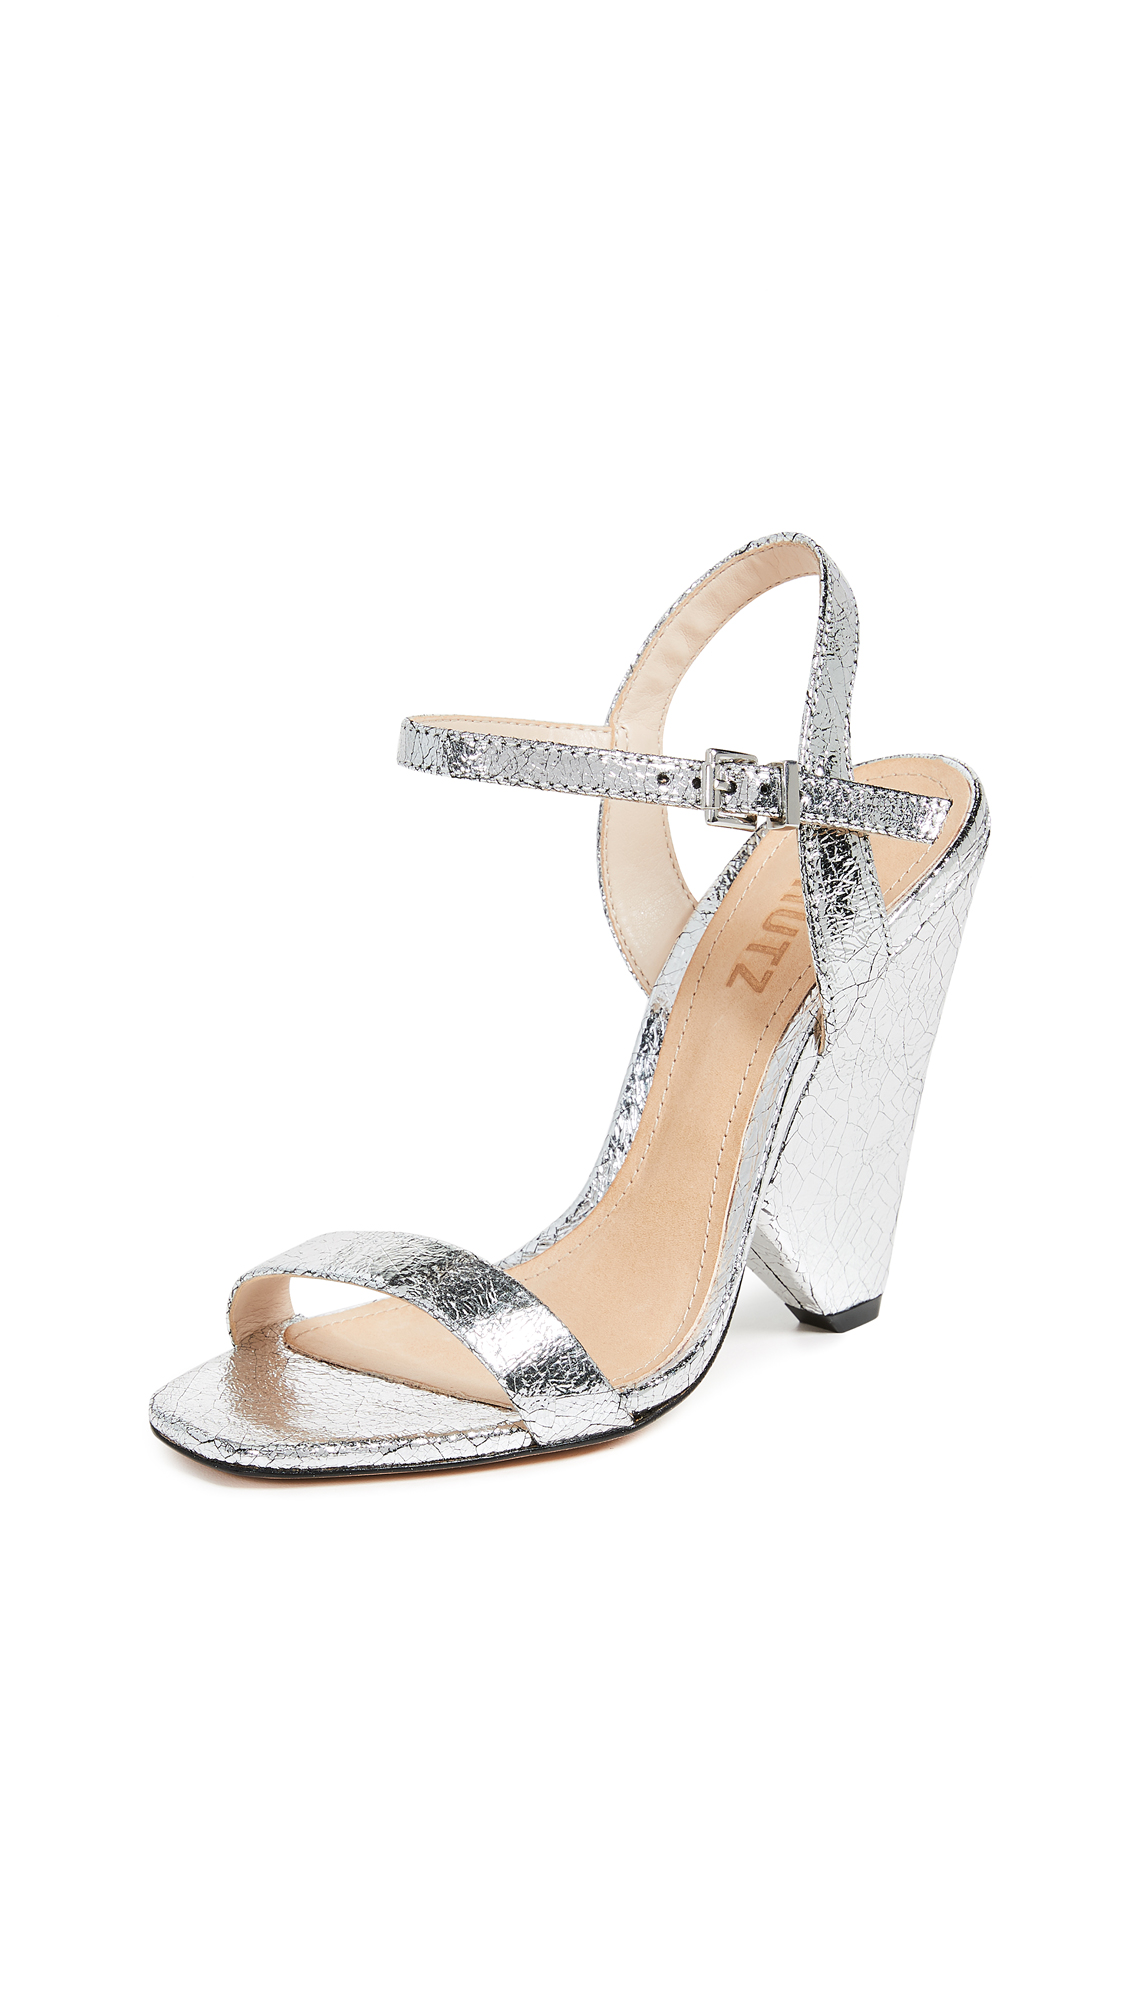 Schutz Liliane Metallic Sandals - Prata